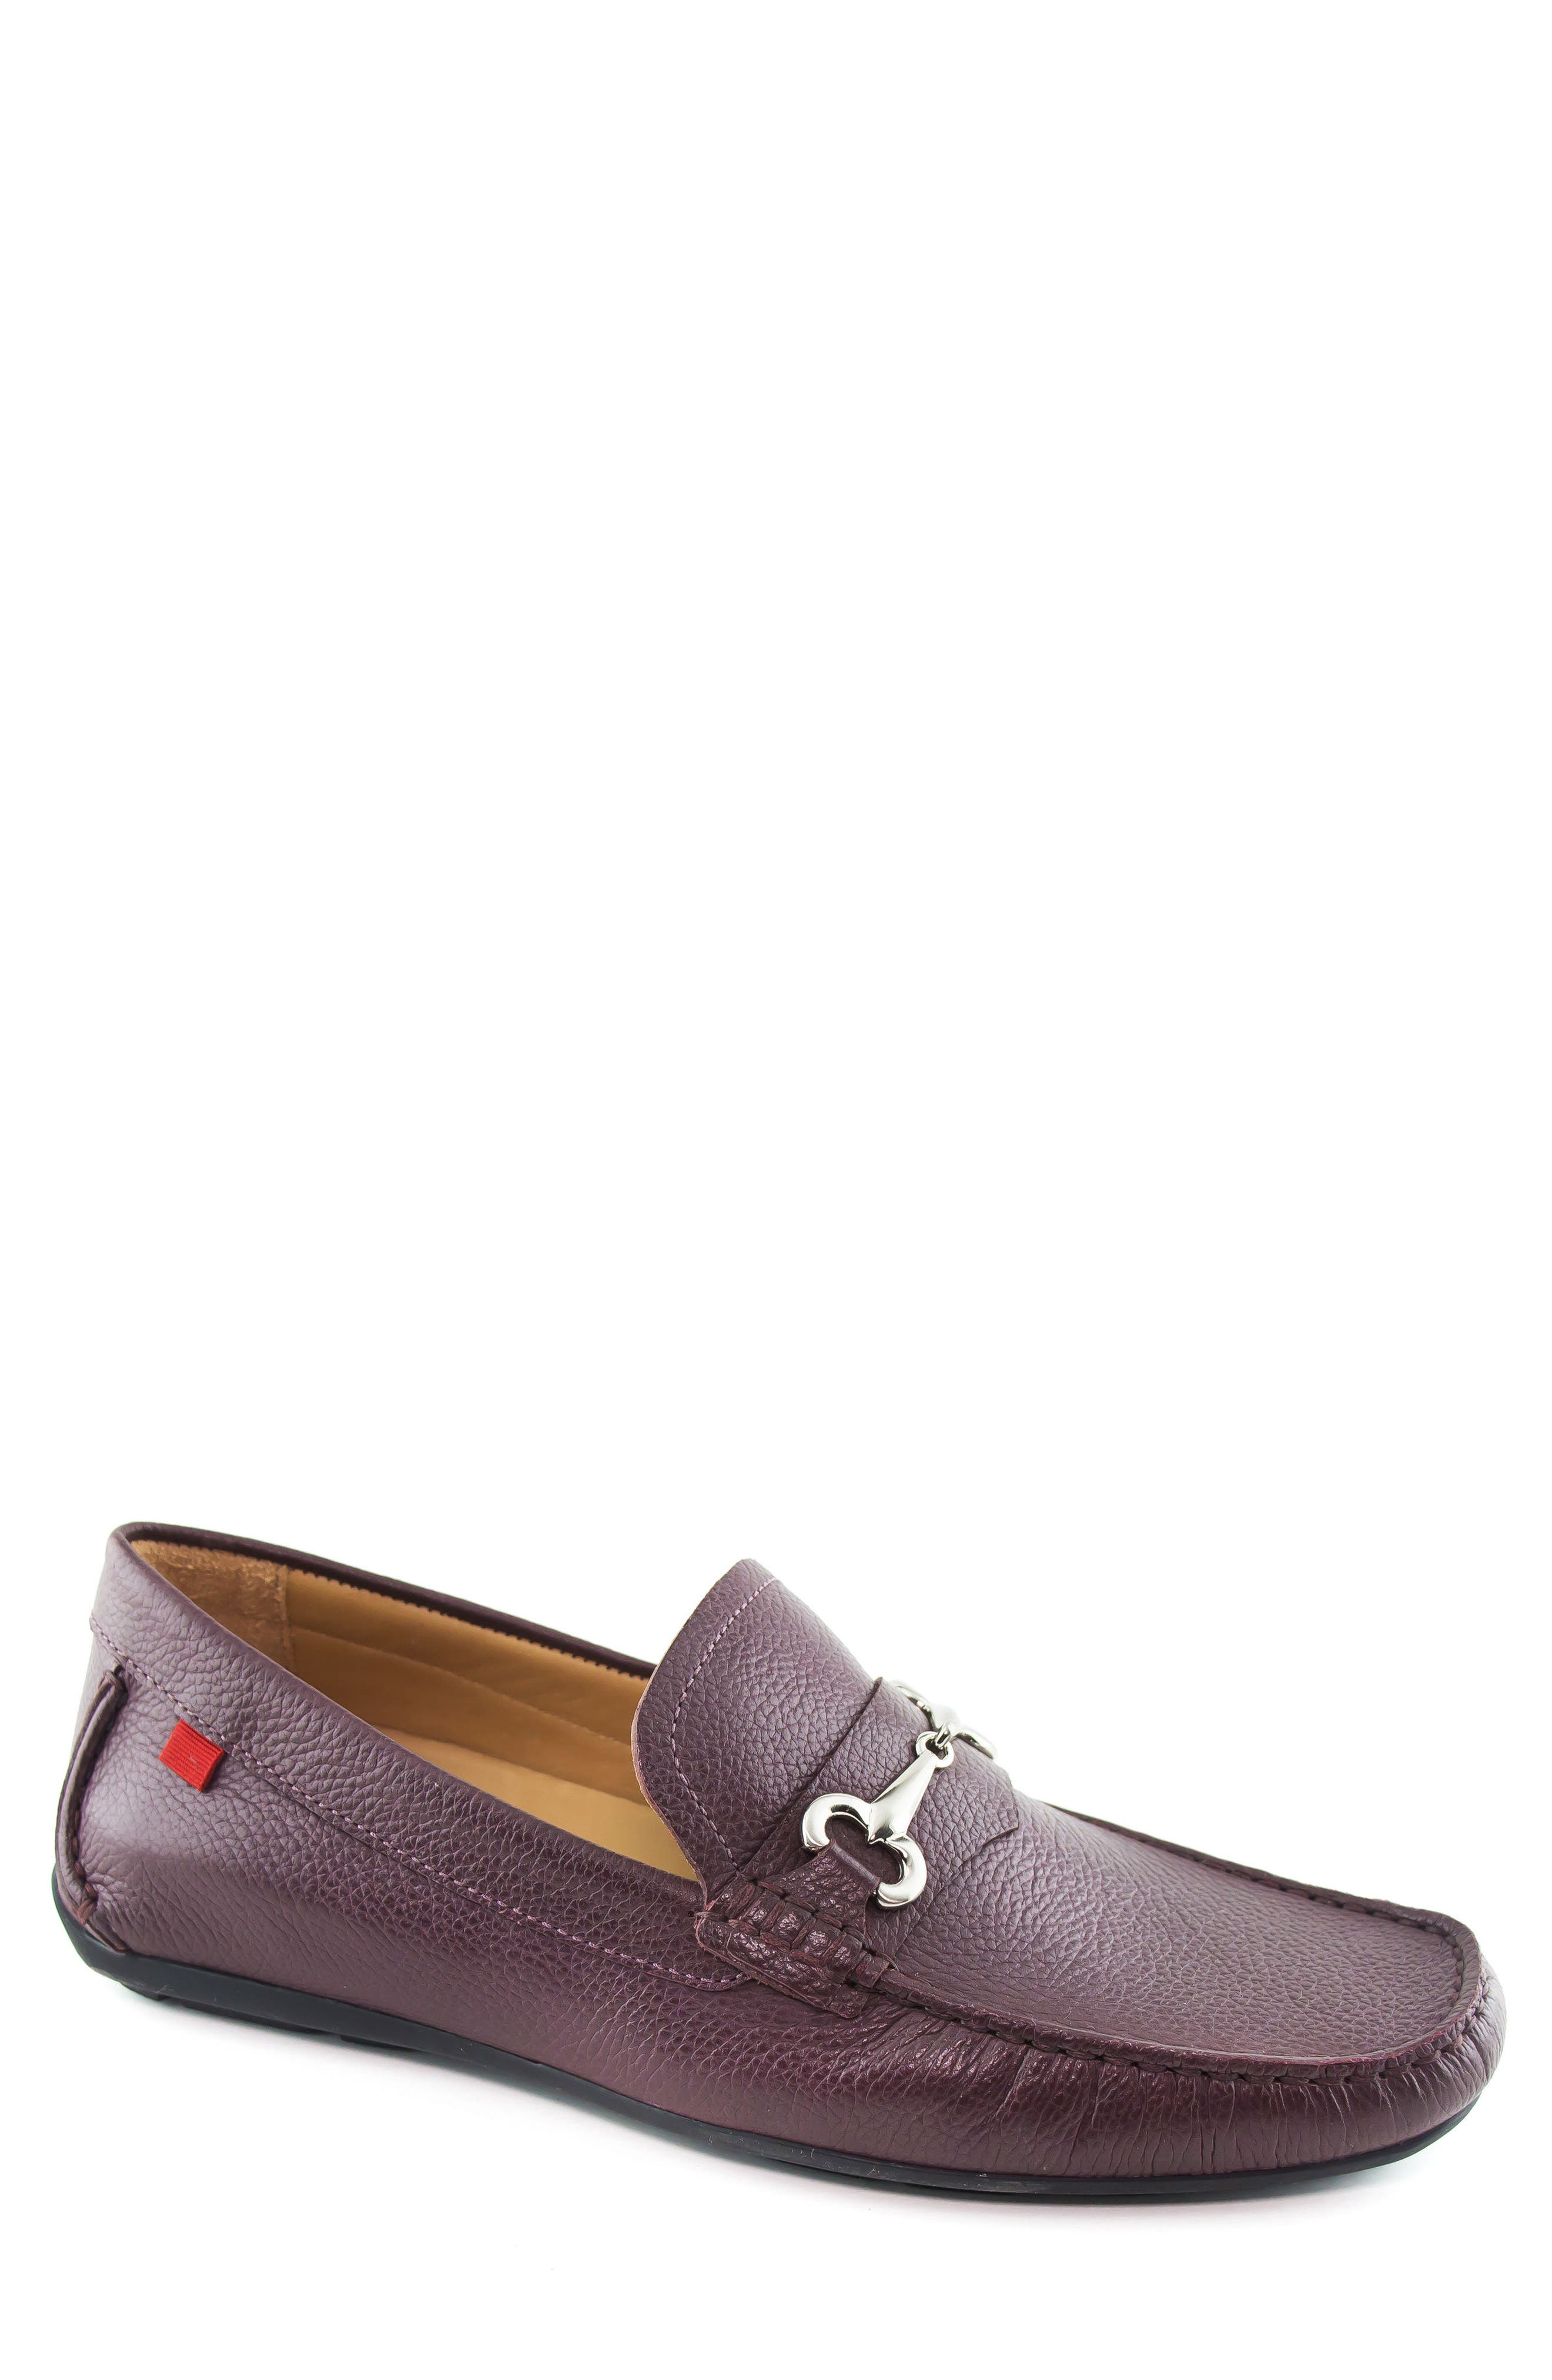 Wall Street Driving Shoe,                             Main thumbnail 1, color,                             WINE